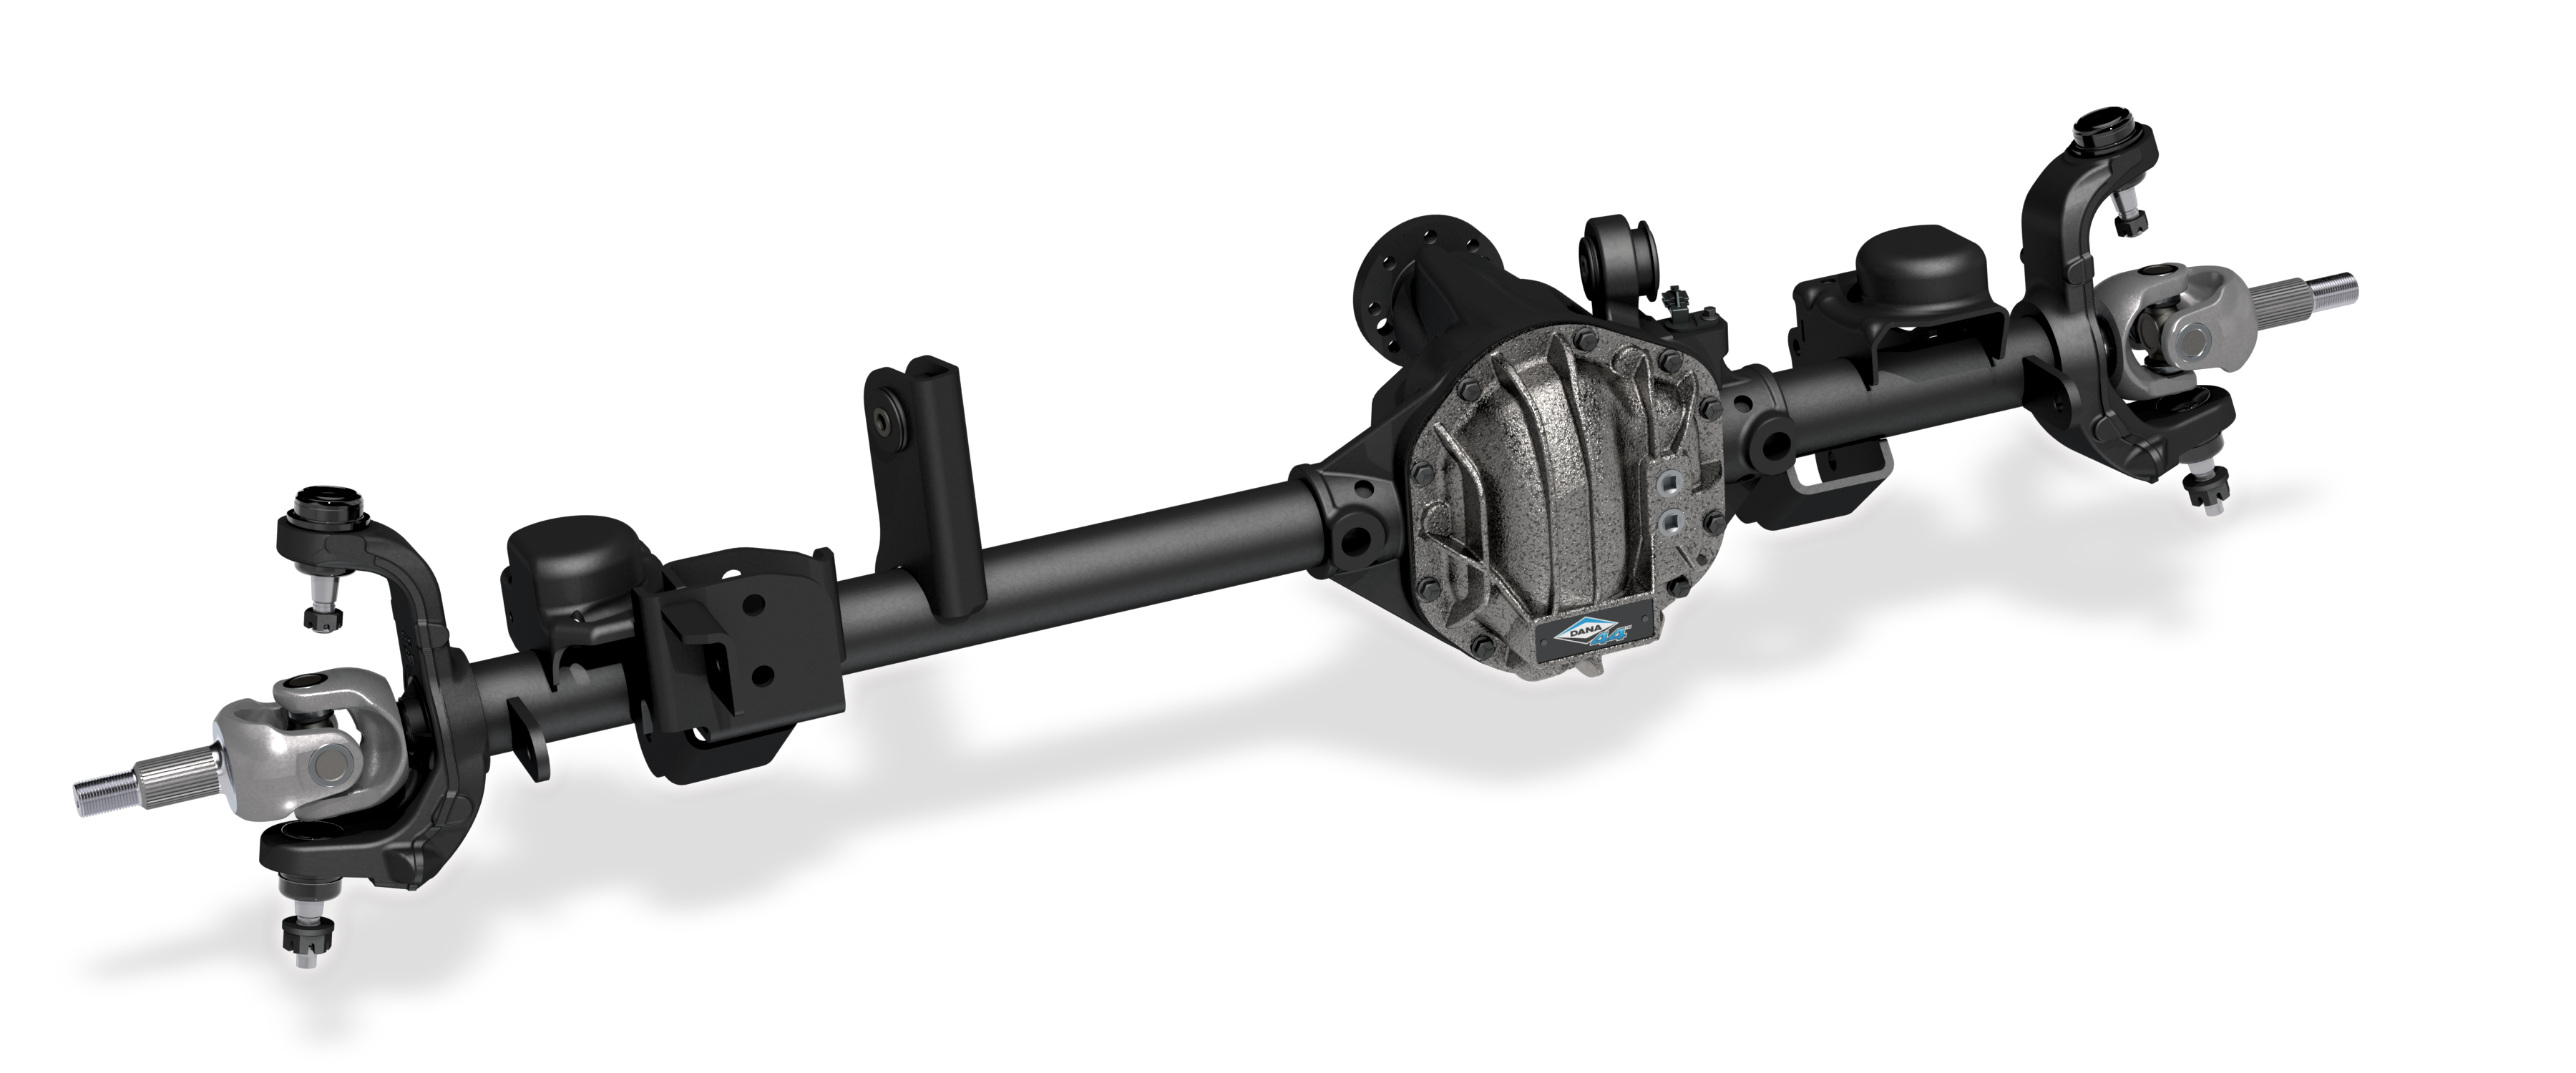 Dana 44 Front Spindle : Ultimate dana ™ front axles axle spicer parts